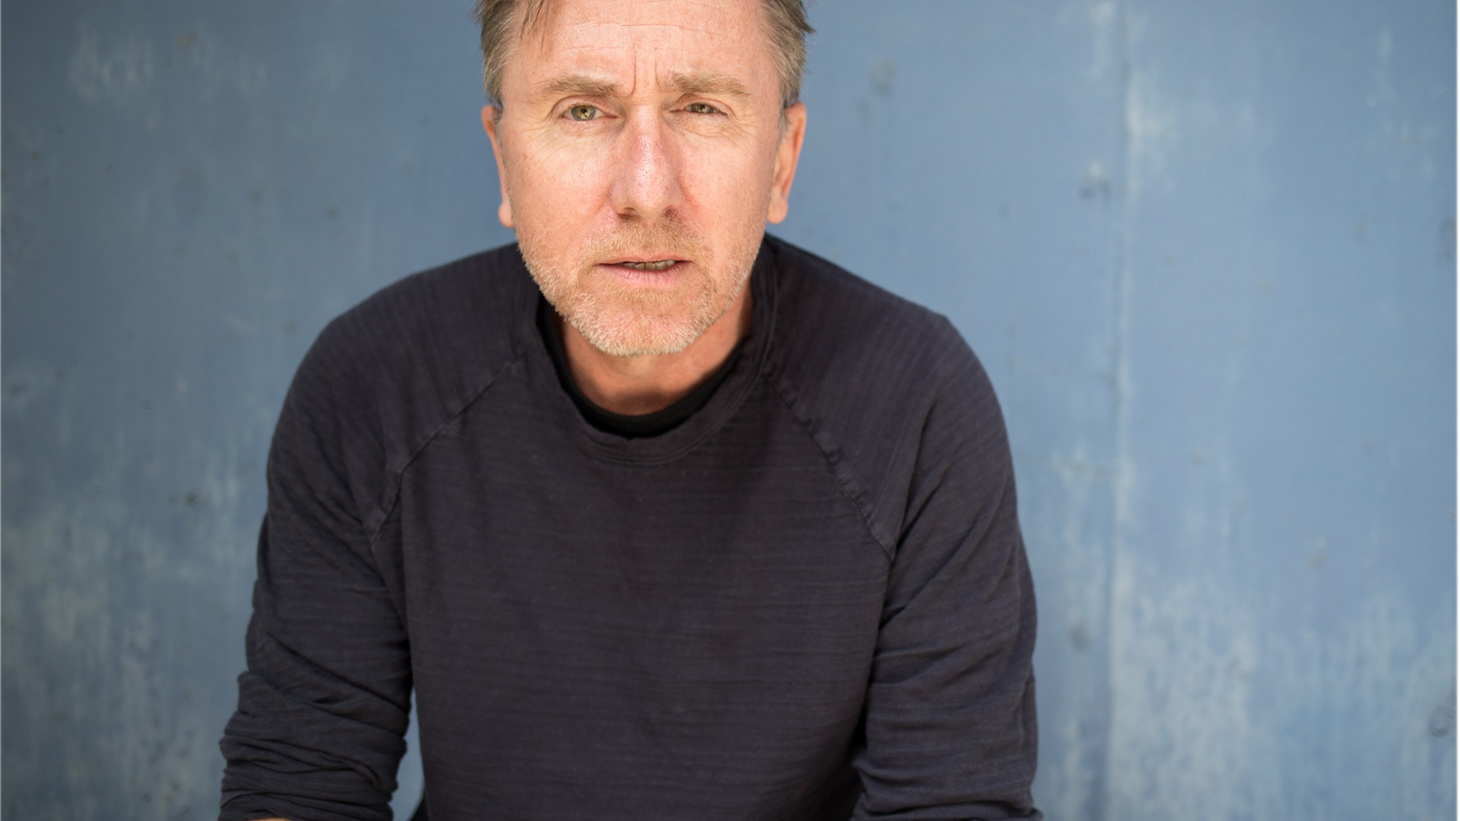 Actor Tim Roth's Guest DJ set is in large part a love letter to his family, his adopted home of America, and his storied career.